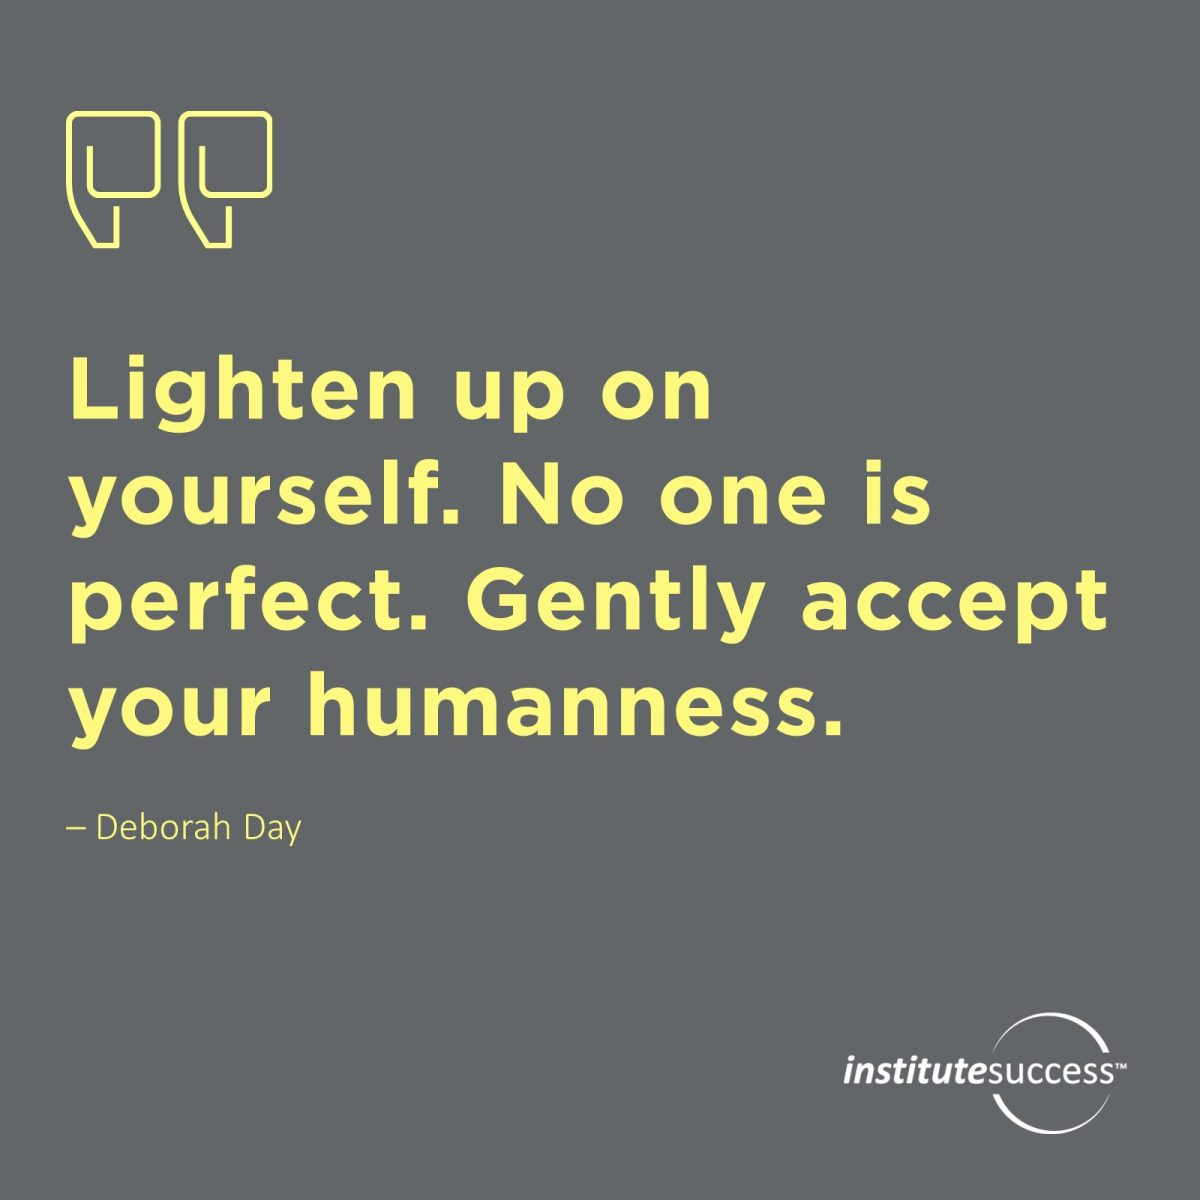 Lighten up on yourself. No one is perfect. Gently accept your humanness – Deborah Day